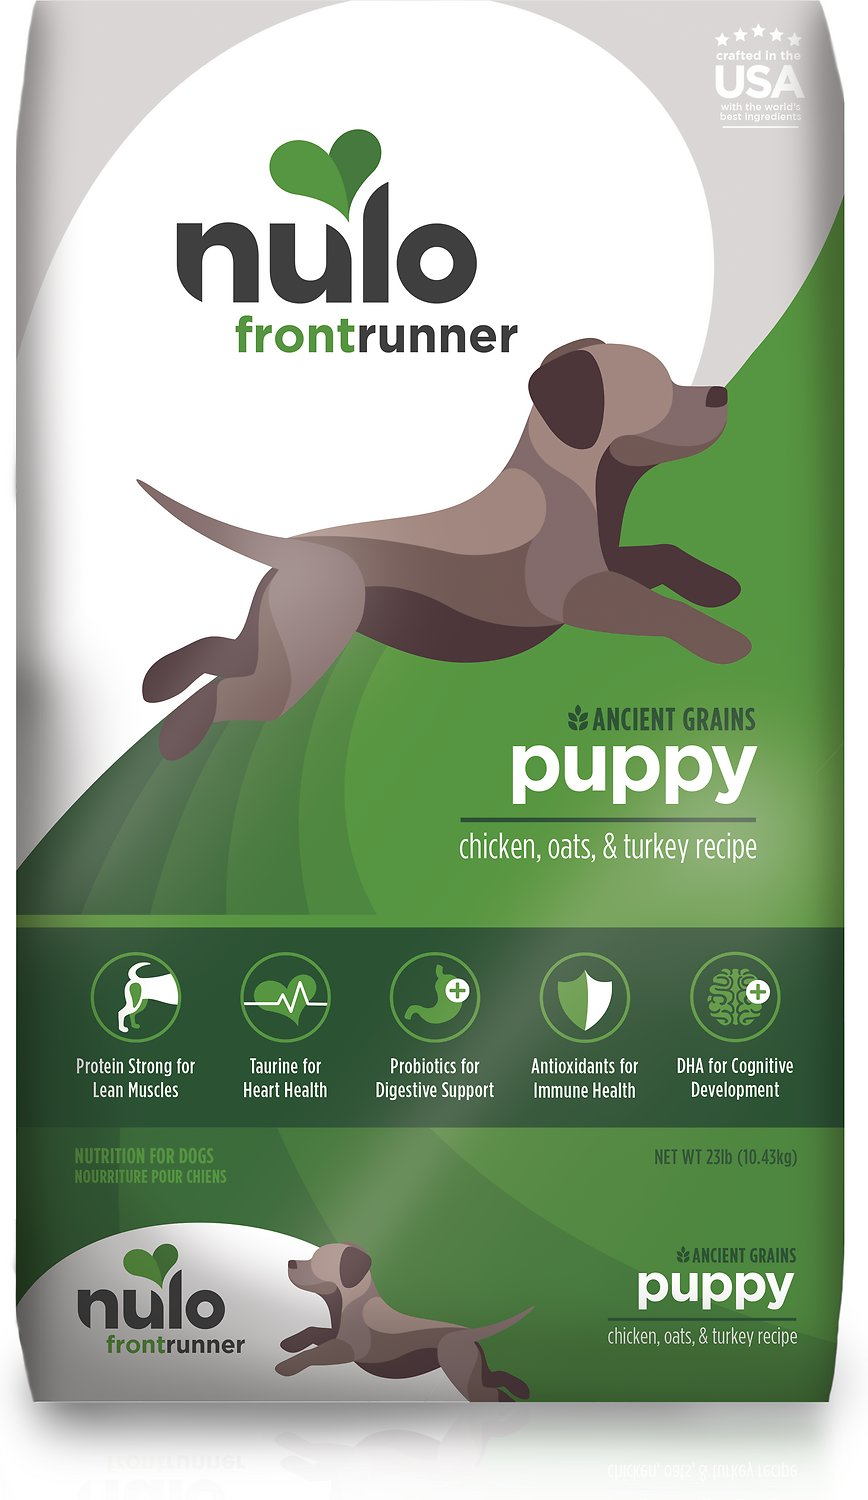 Nulo Frontrunner Ancient Grains Chicken, Oats, & Turkey Puppy Dry Dog Food Image